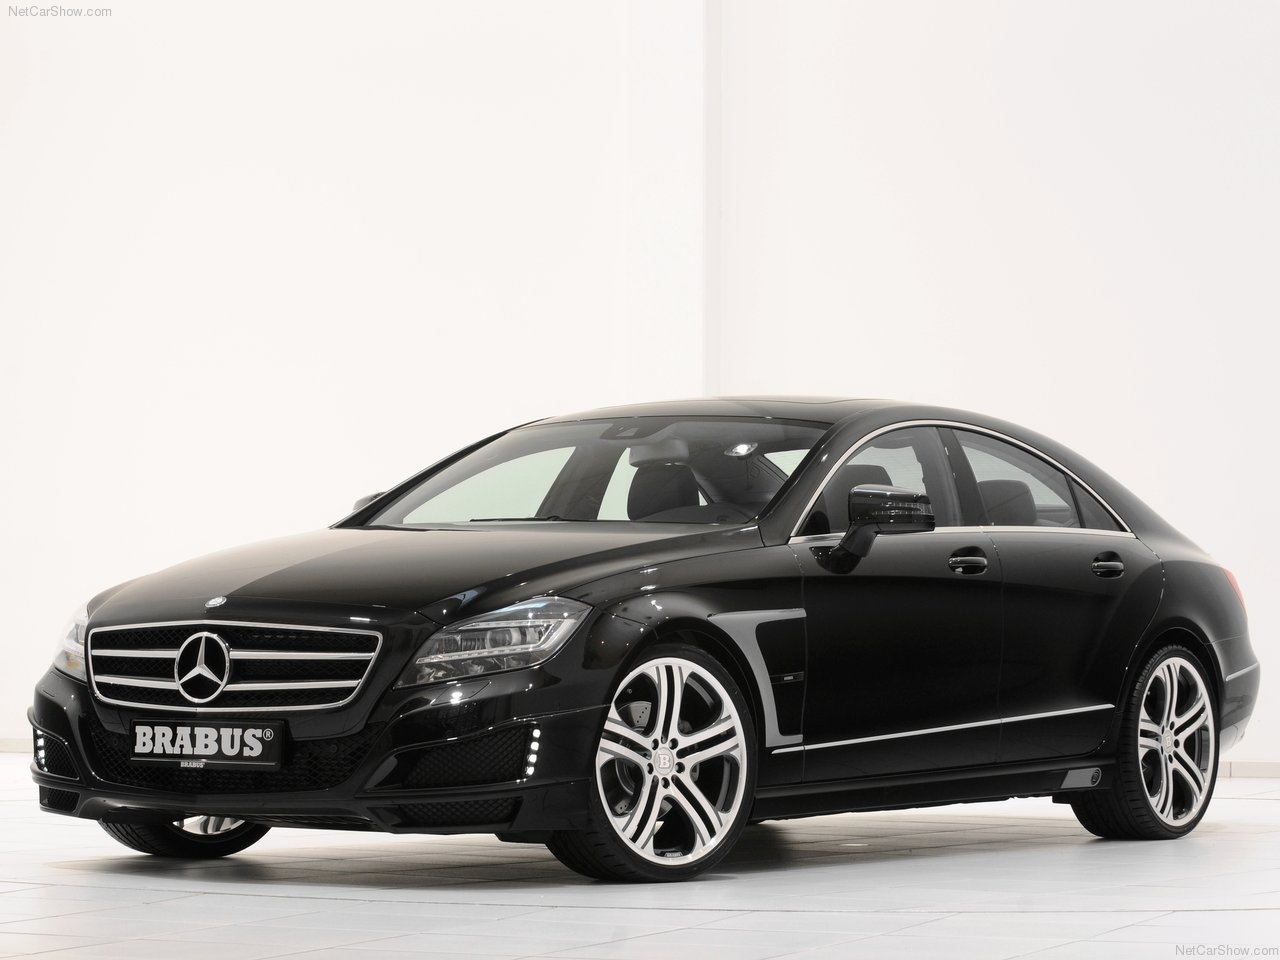 Brabus mercedes benz cls 2012 for Mercedes benz cls 2012 price